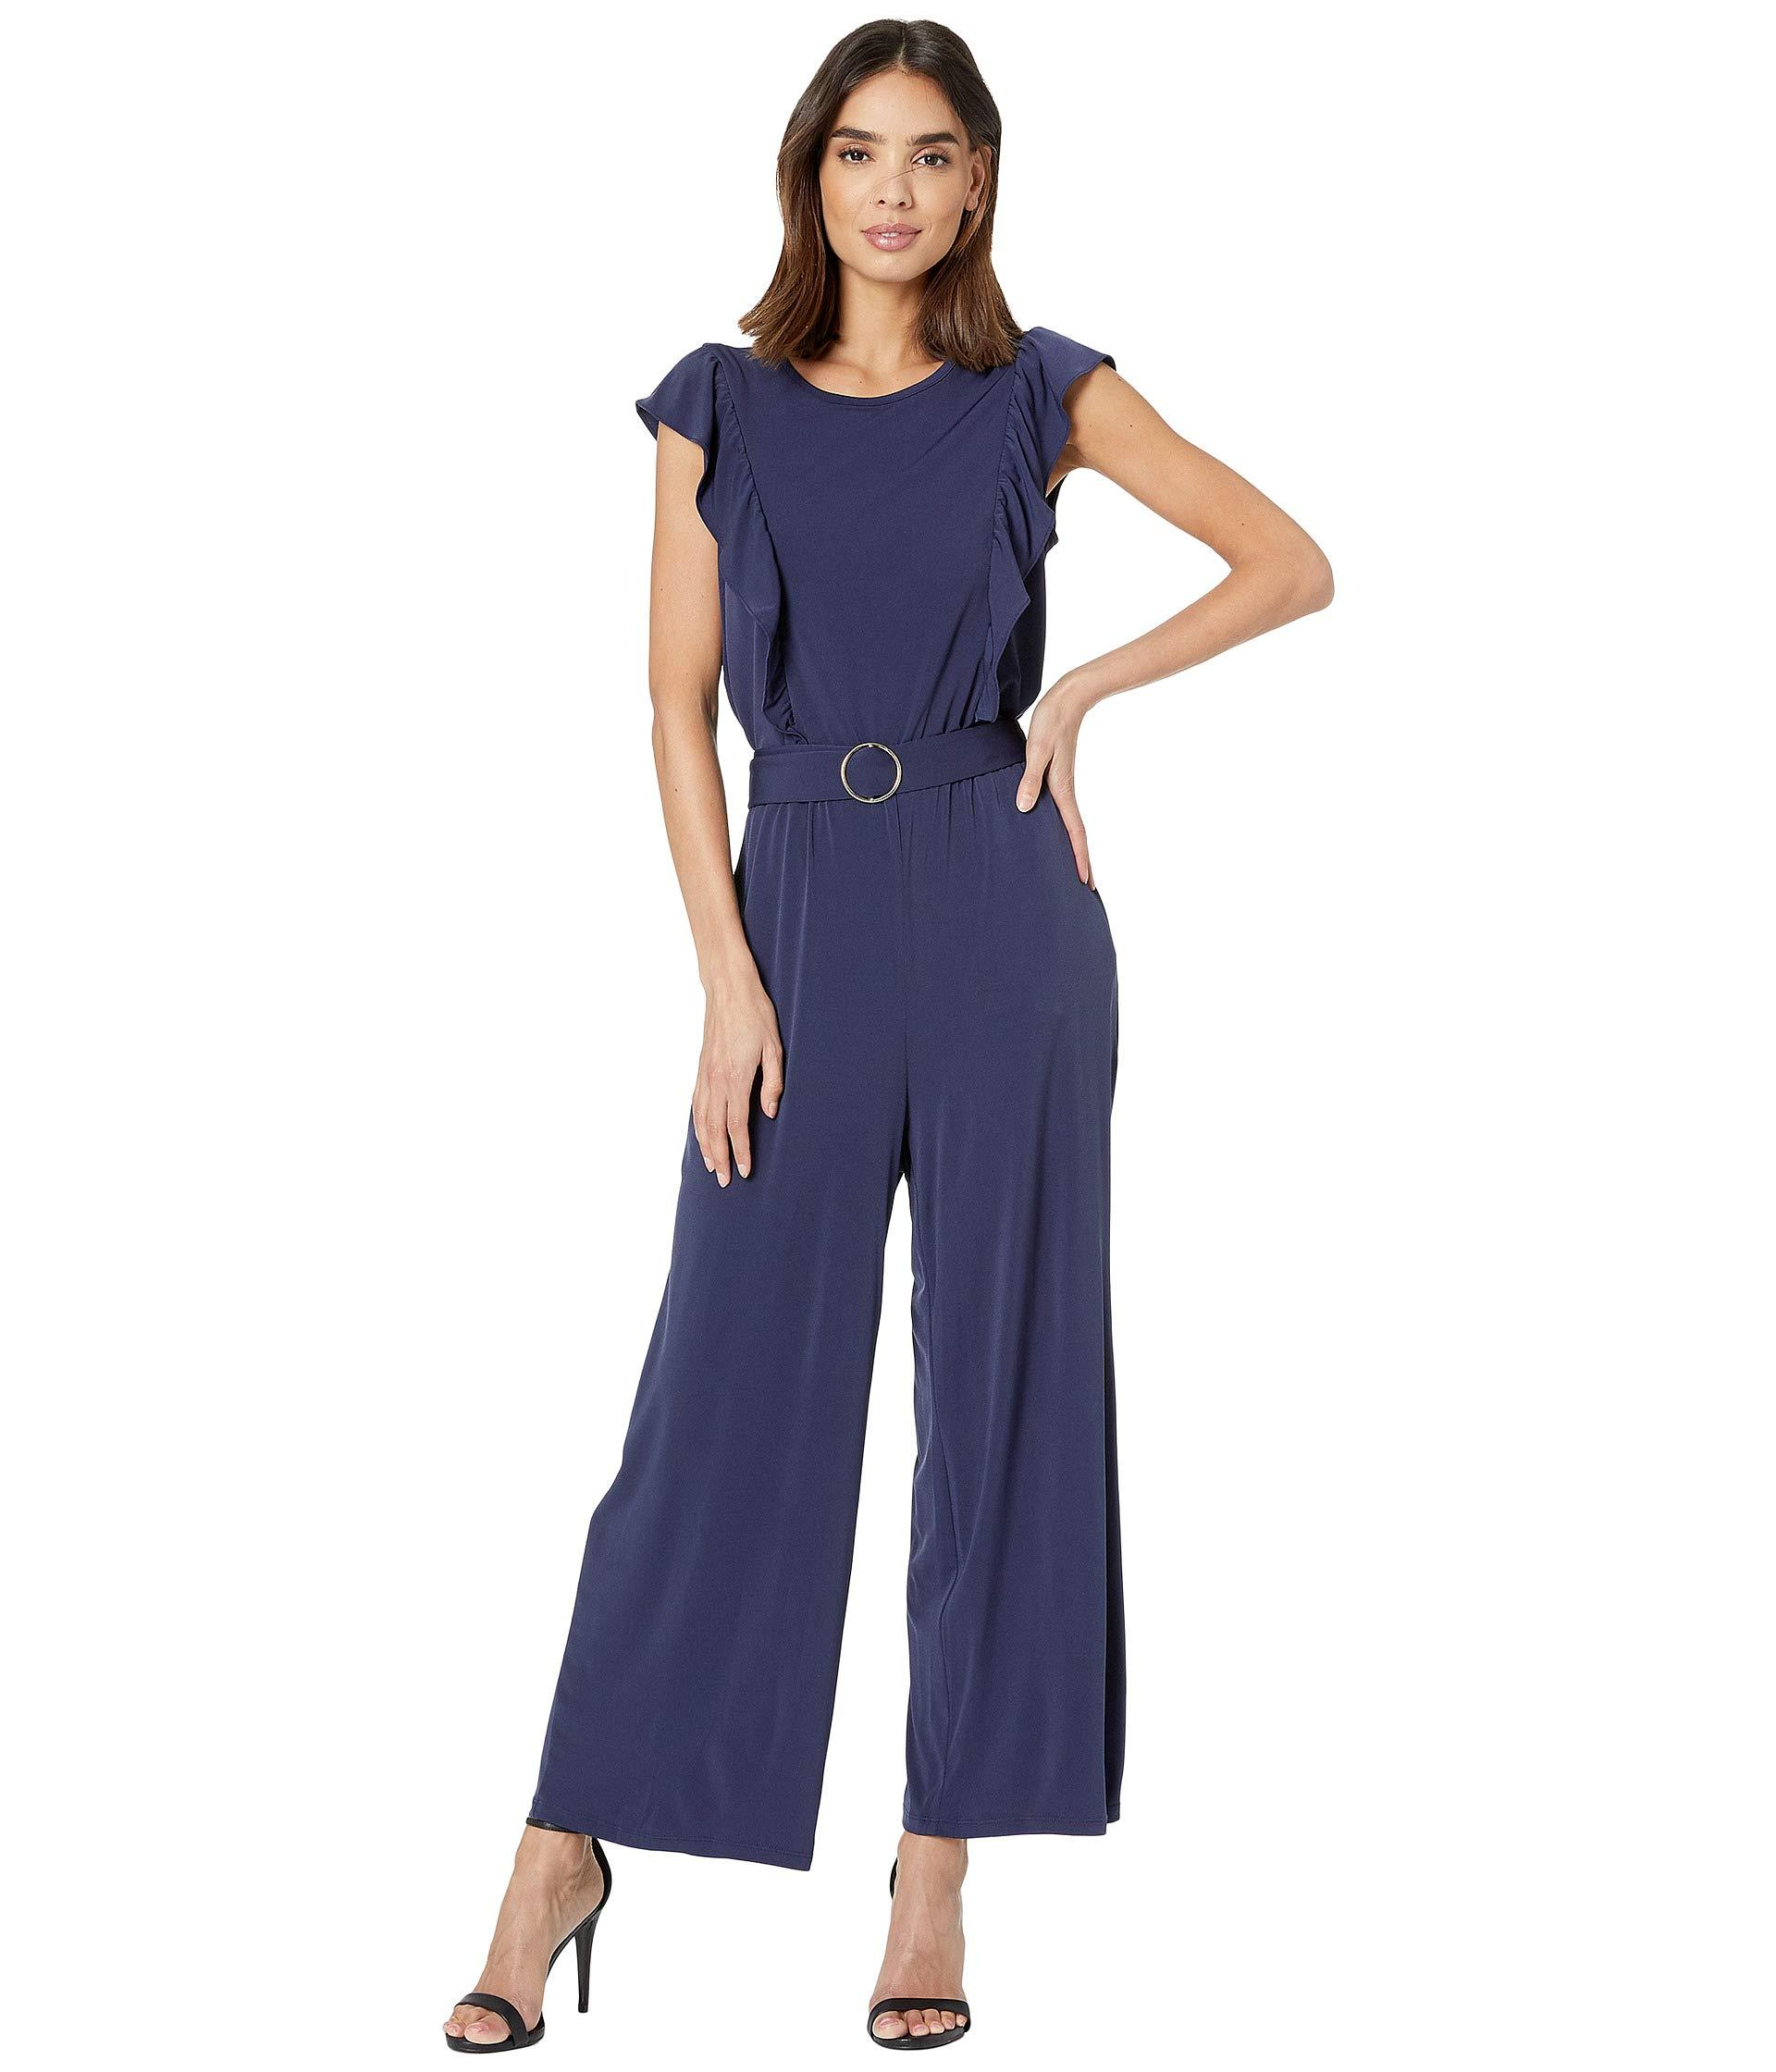 861604302fce Lyst - MICHAEL Michael Kors Solid Ring Belt Jumpsuit (true Navy ...